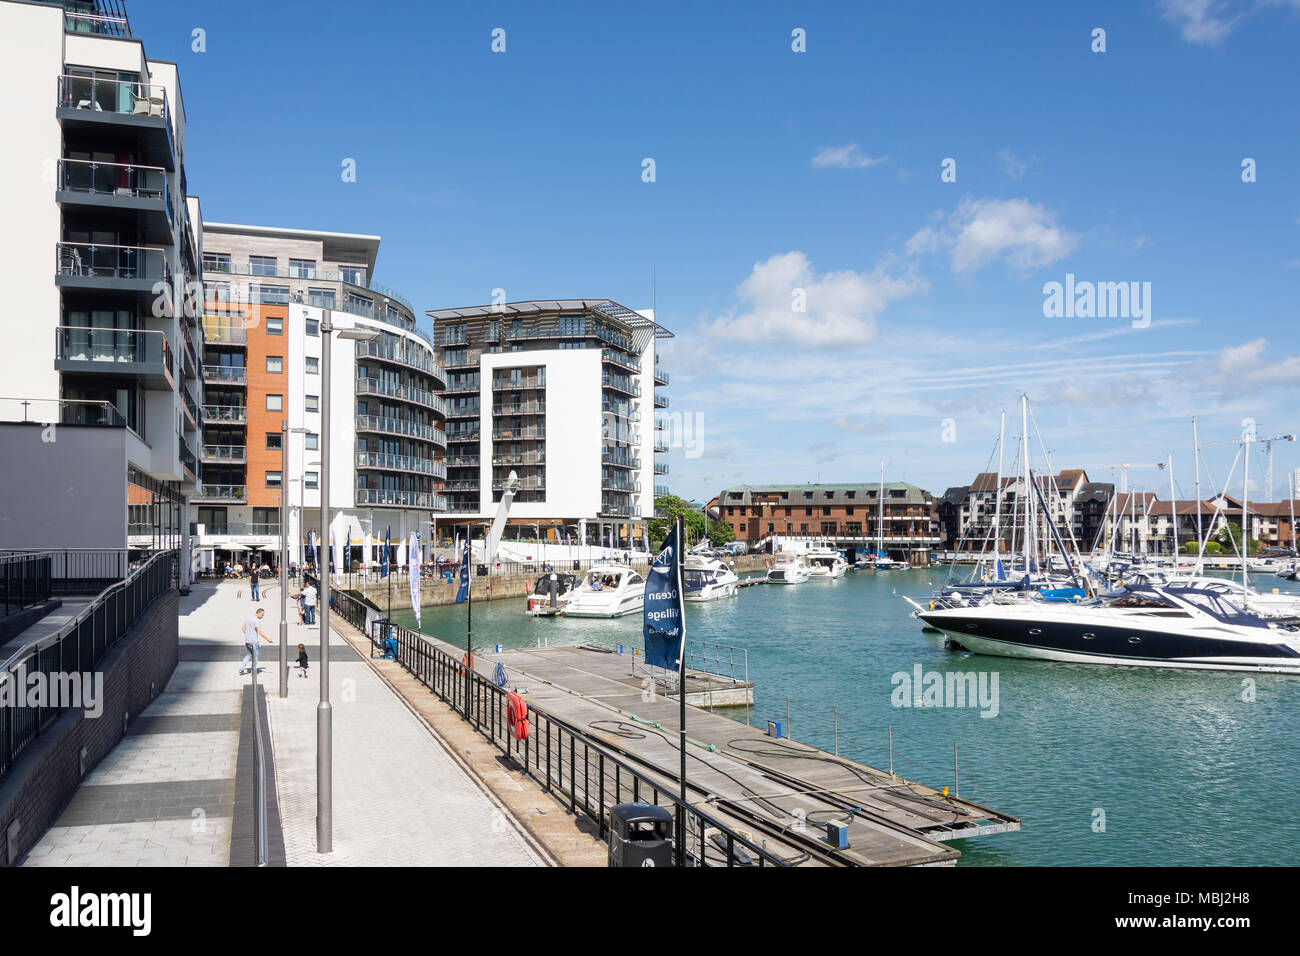 Quayside at Ocean Village Marina, Southampton, Hampshire, England, United Kingdom - Stock Image